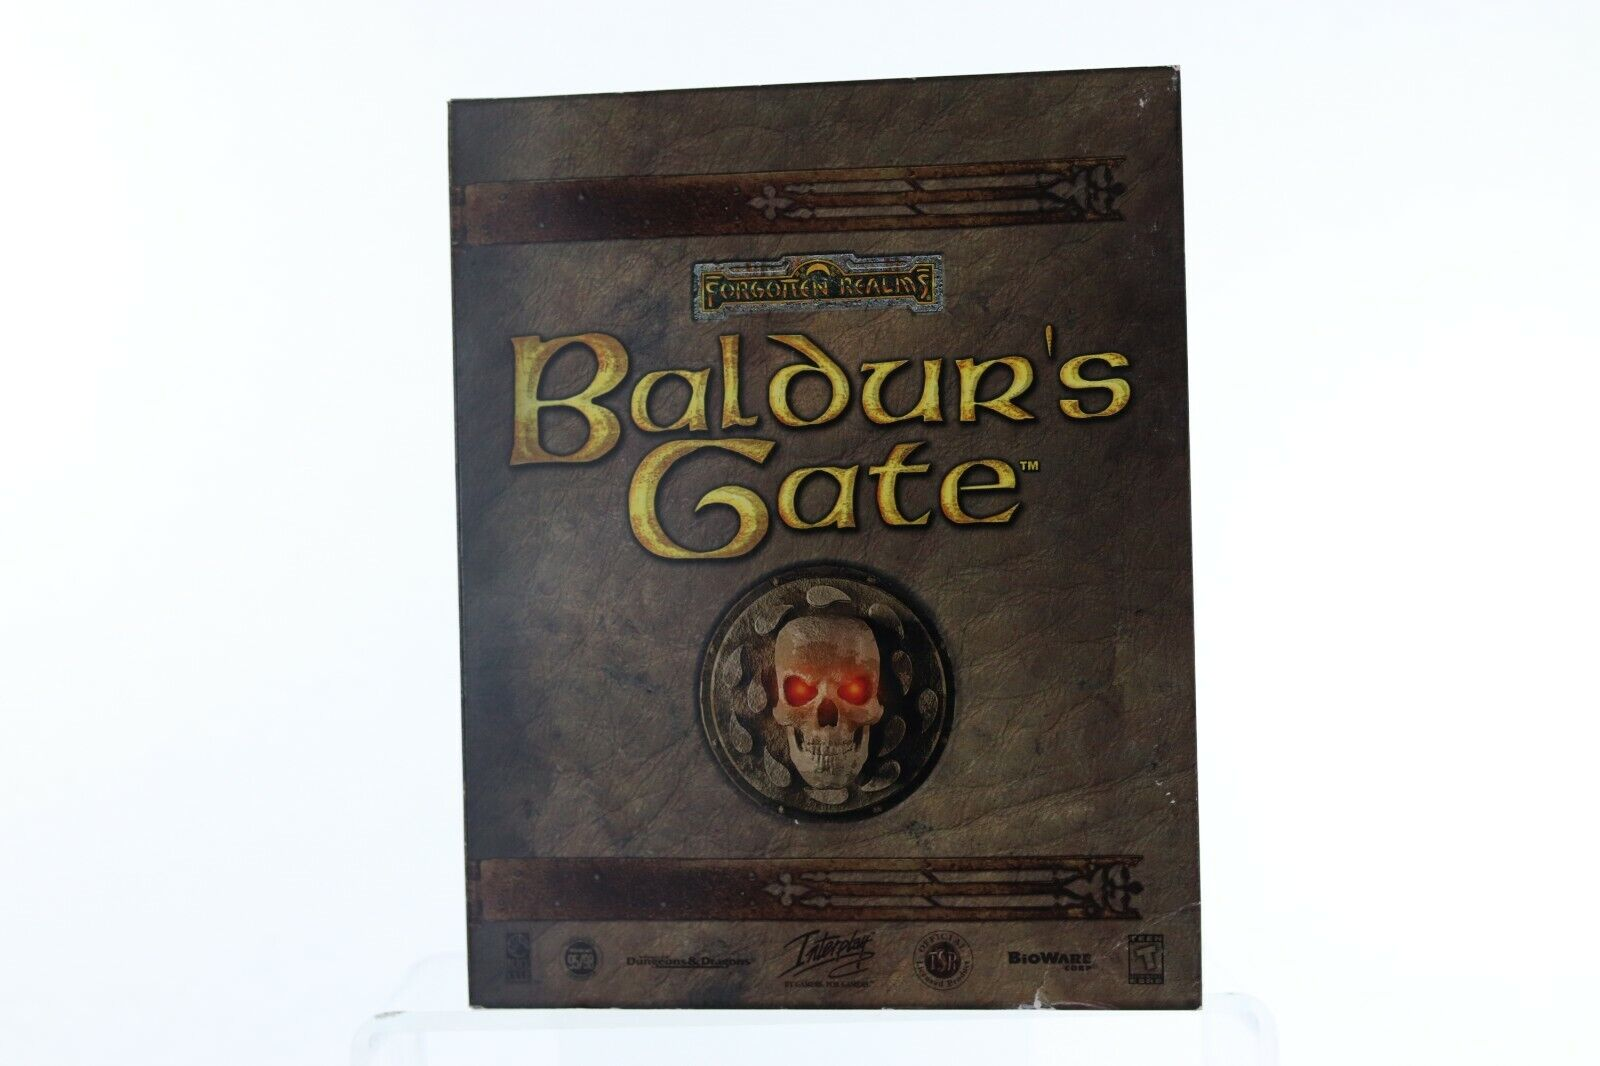 Computer Games - Baldur's Gate Forgotten Realms PC Computer Game 1998 BIG BOX COMPLETE Tested